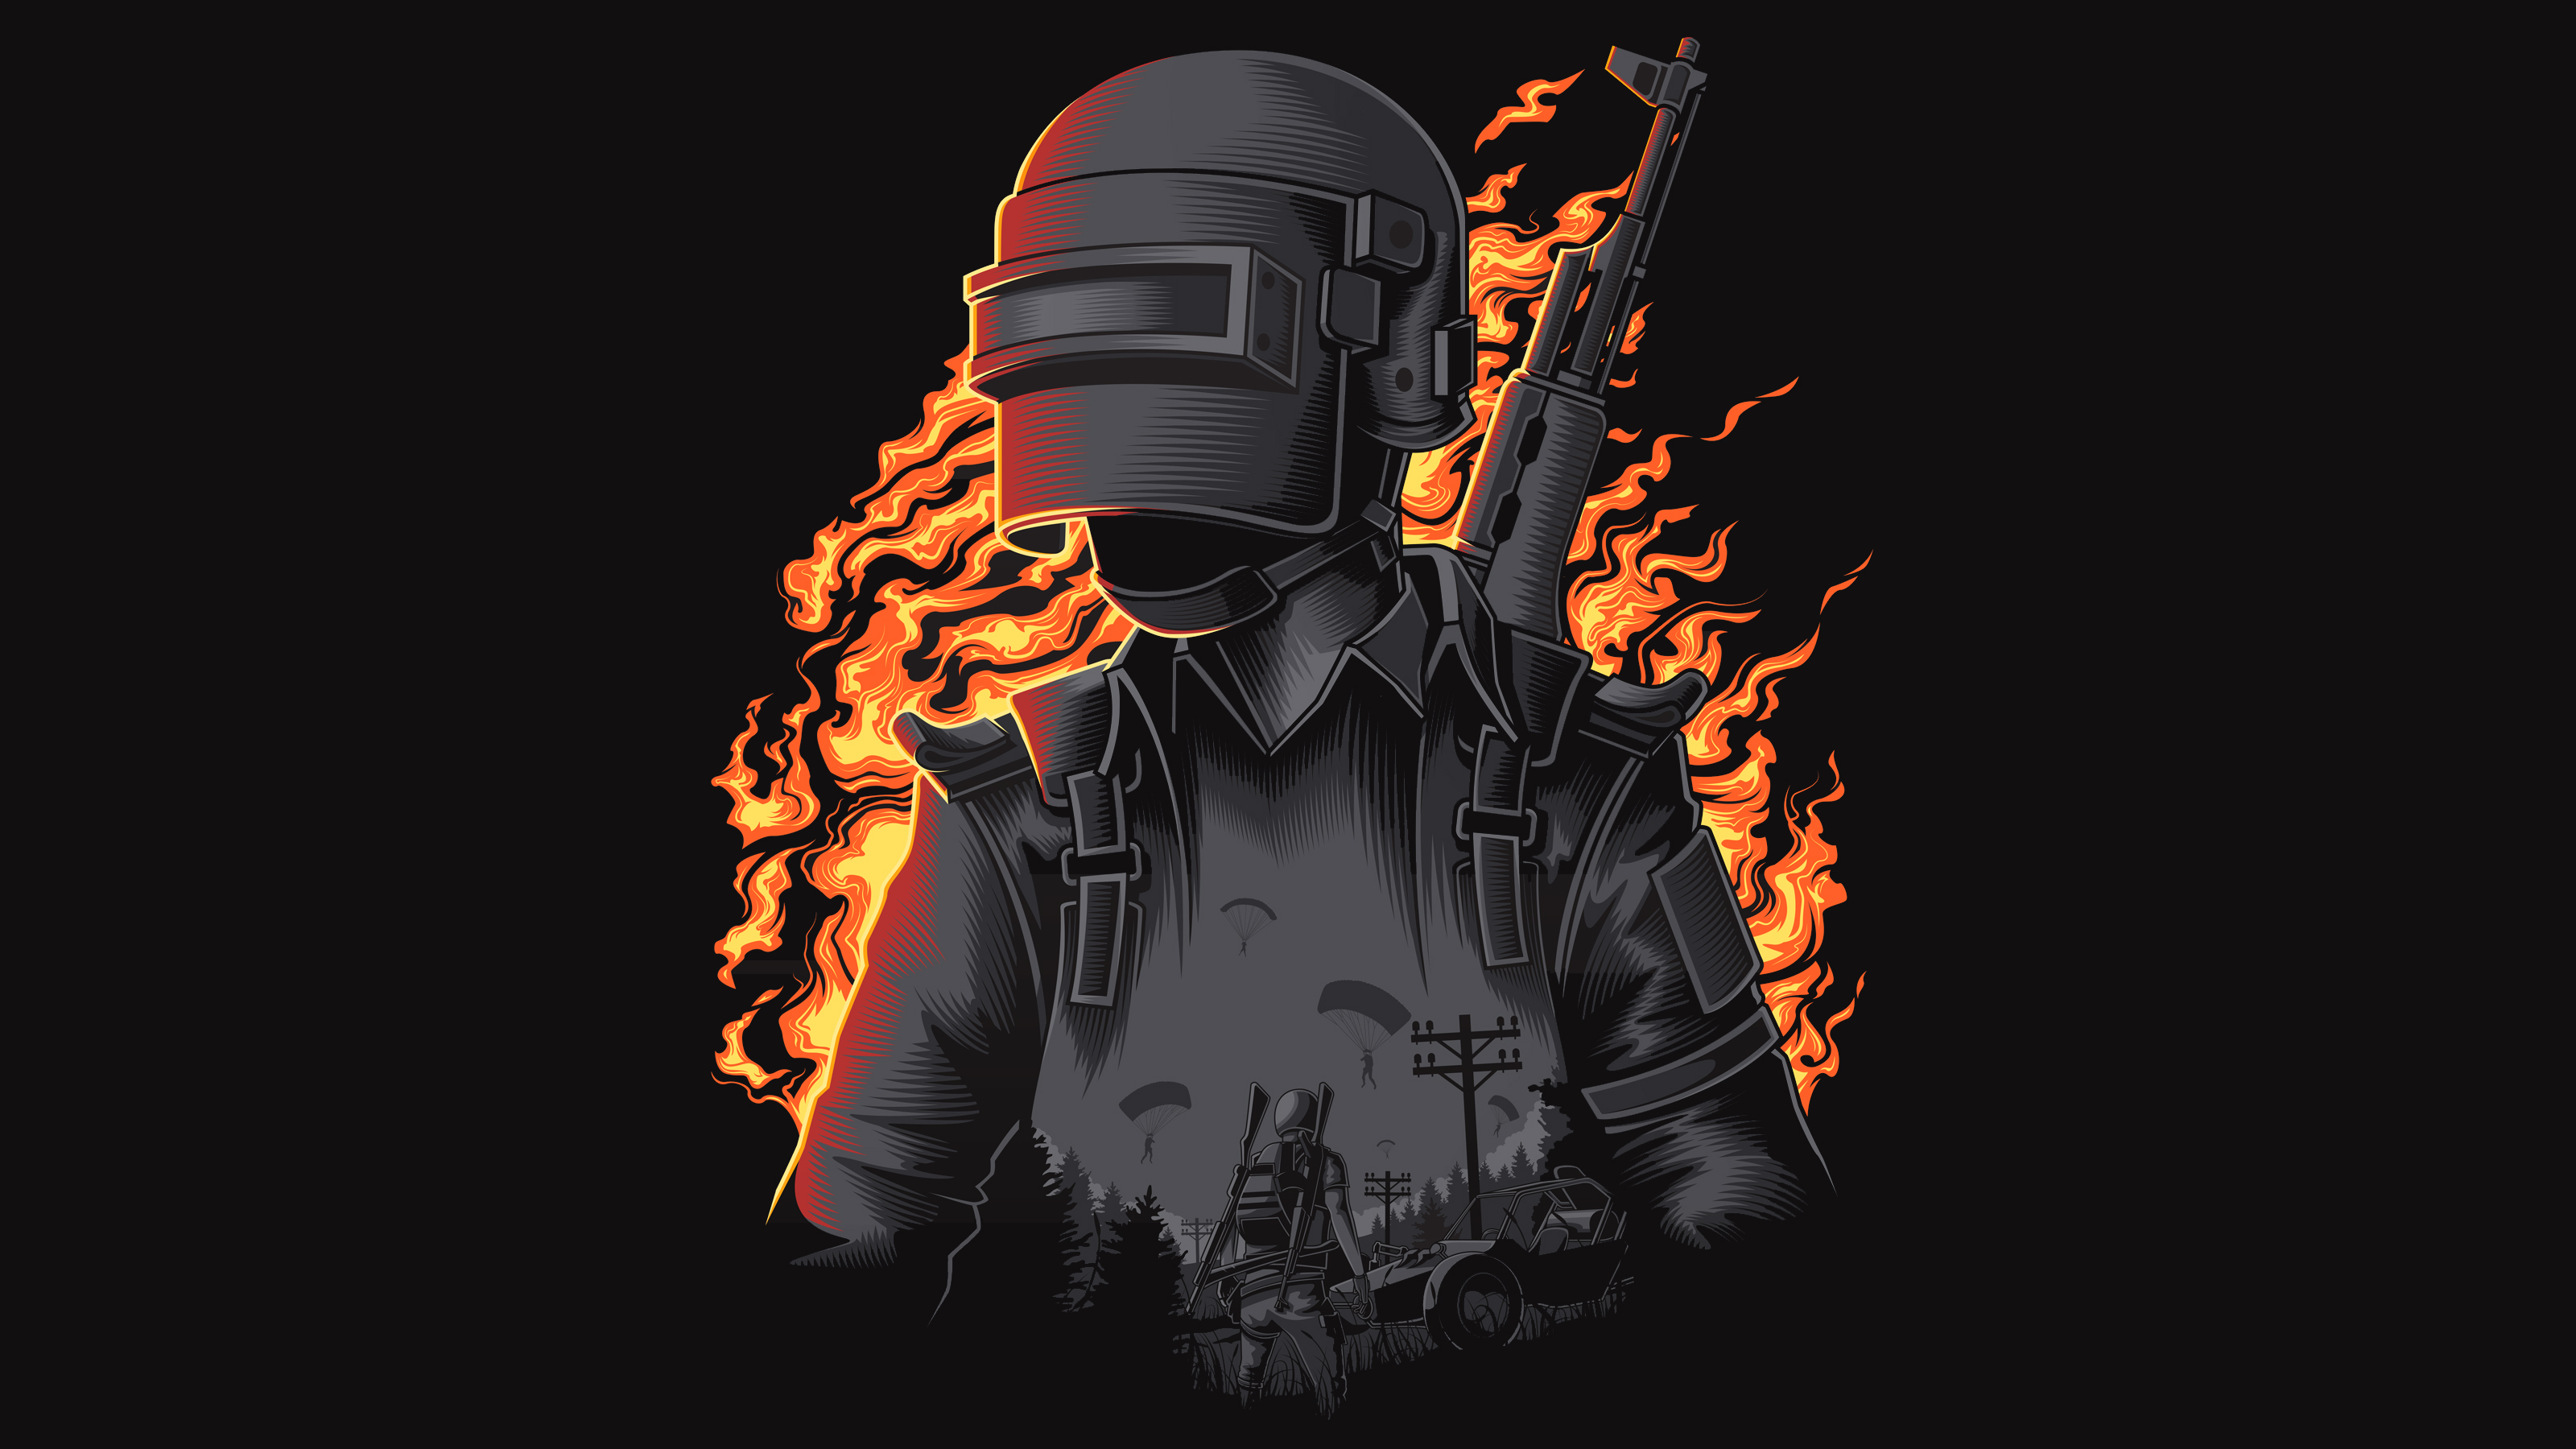 Pubg Wallpaper Dual Monitor: PUBG Dark Illustration Wallpapers